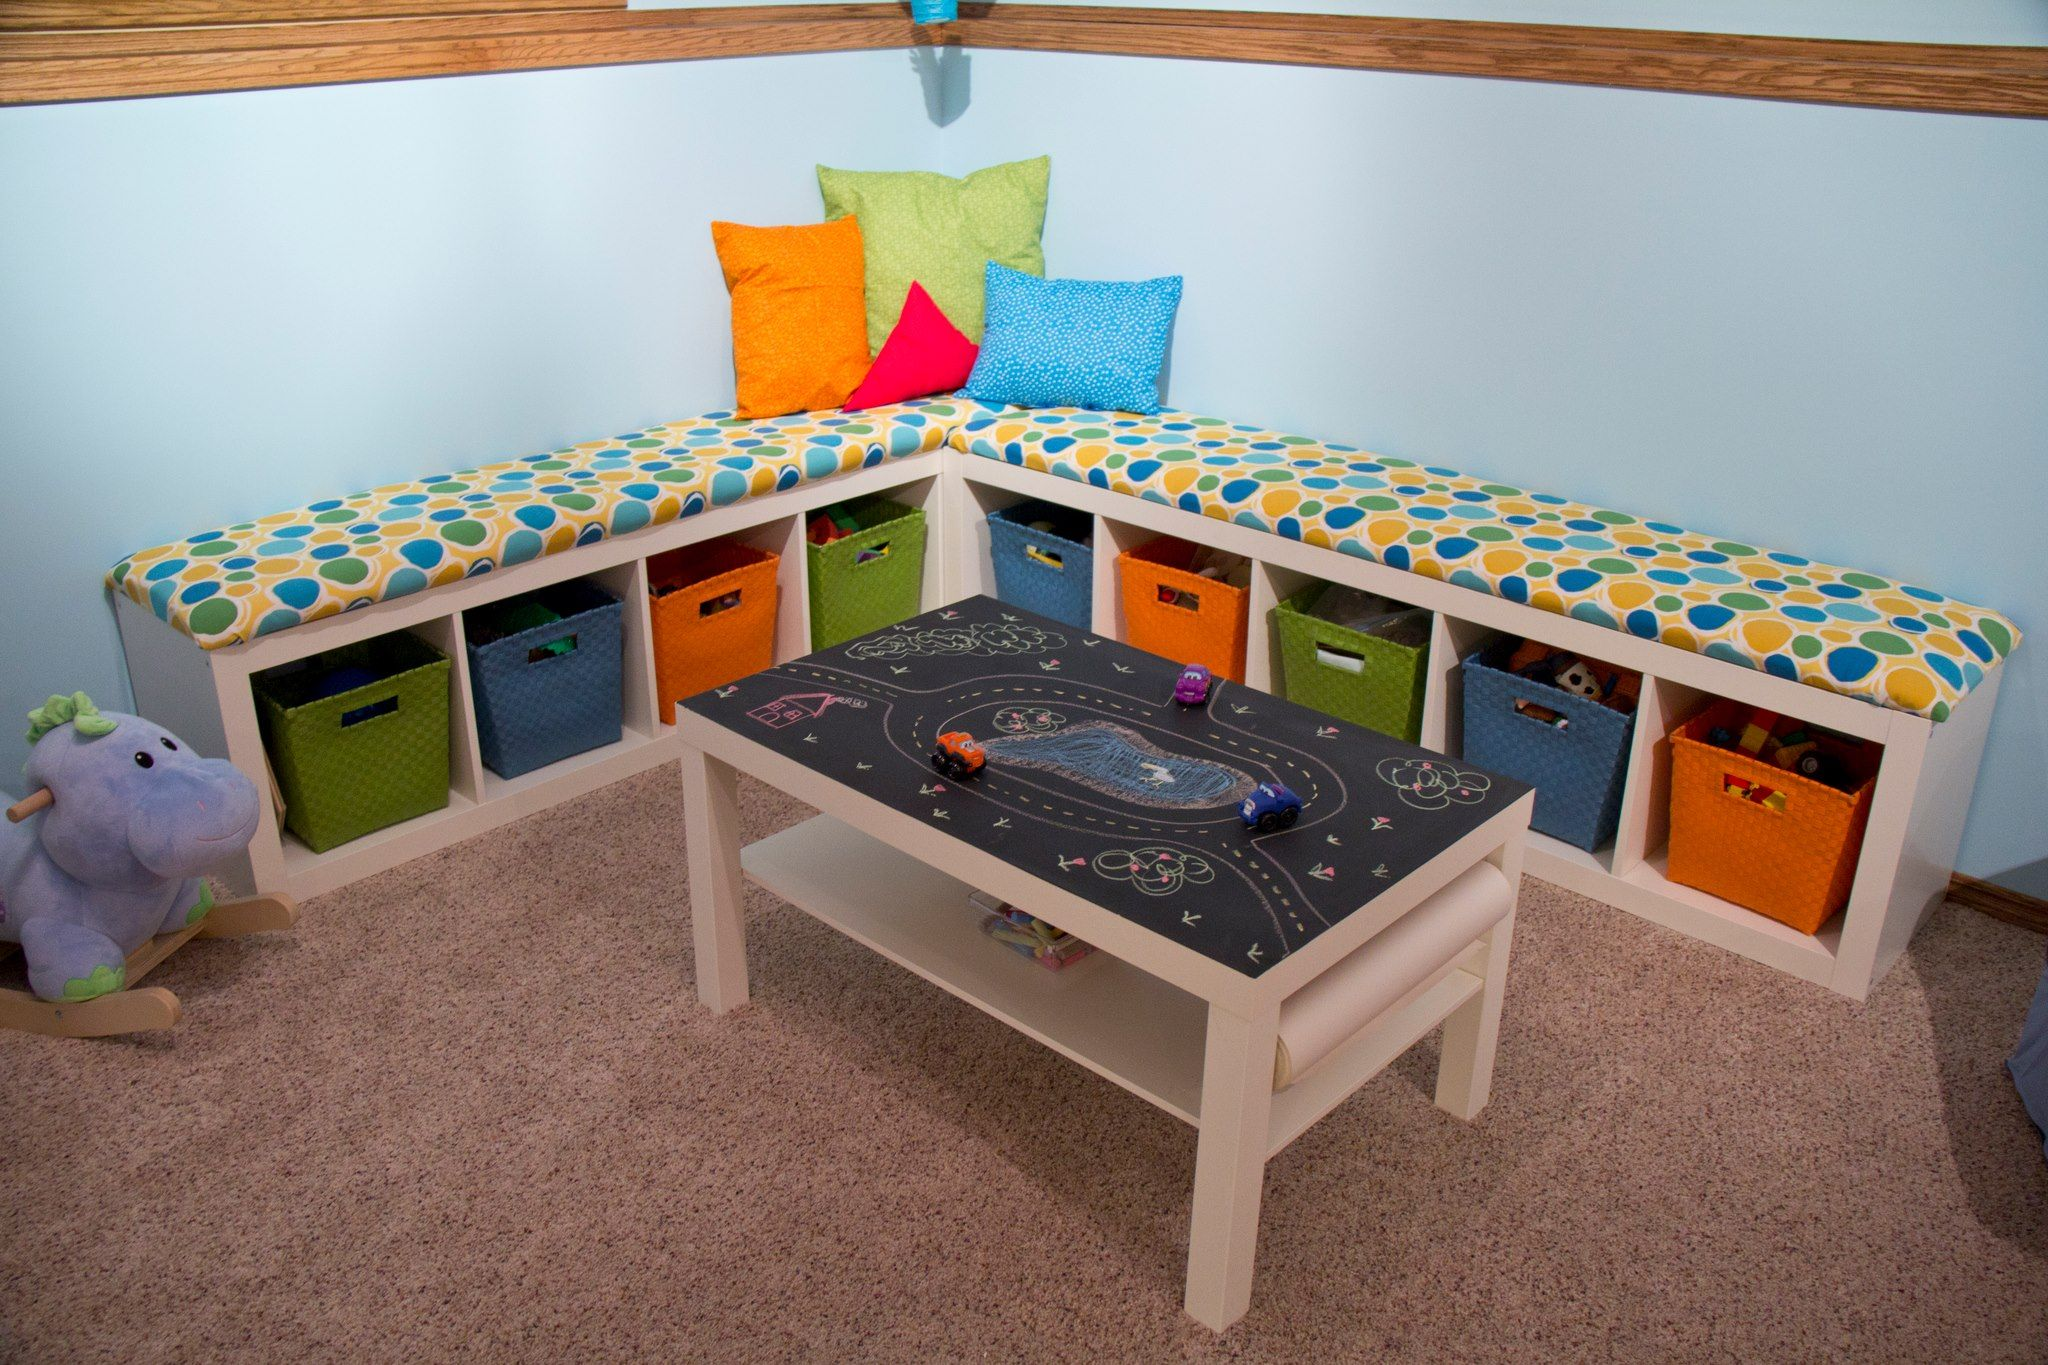 Loft bed with desk jordan's furniture  Benches  Interior Design  Pinterest  Bench seat and Playrooms